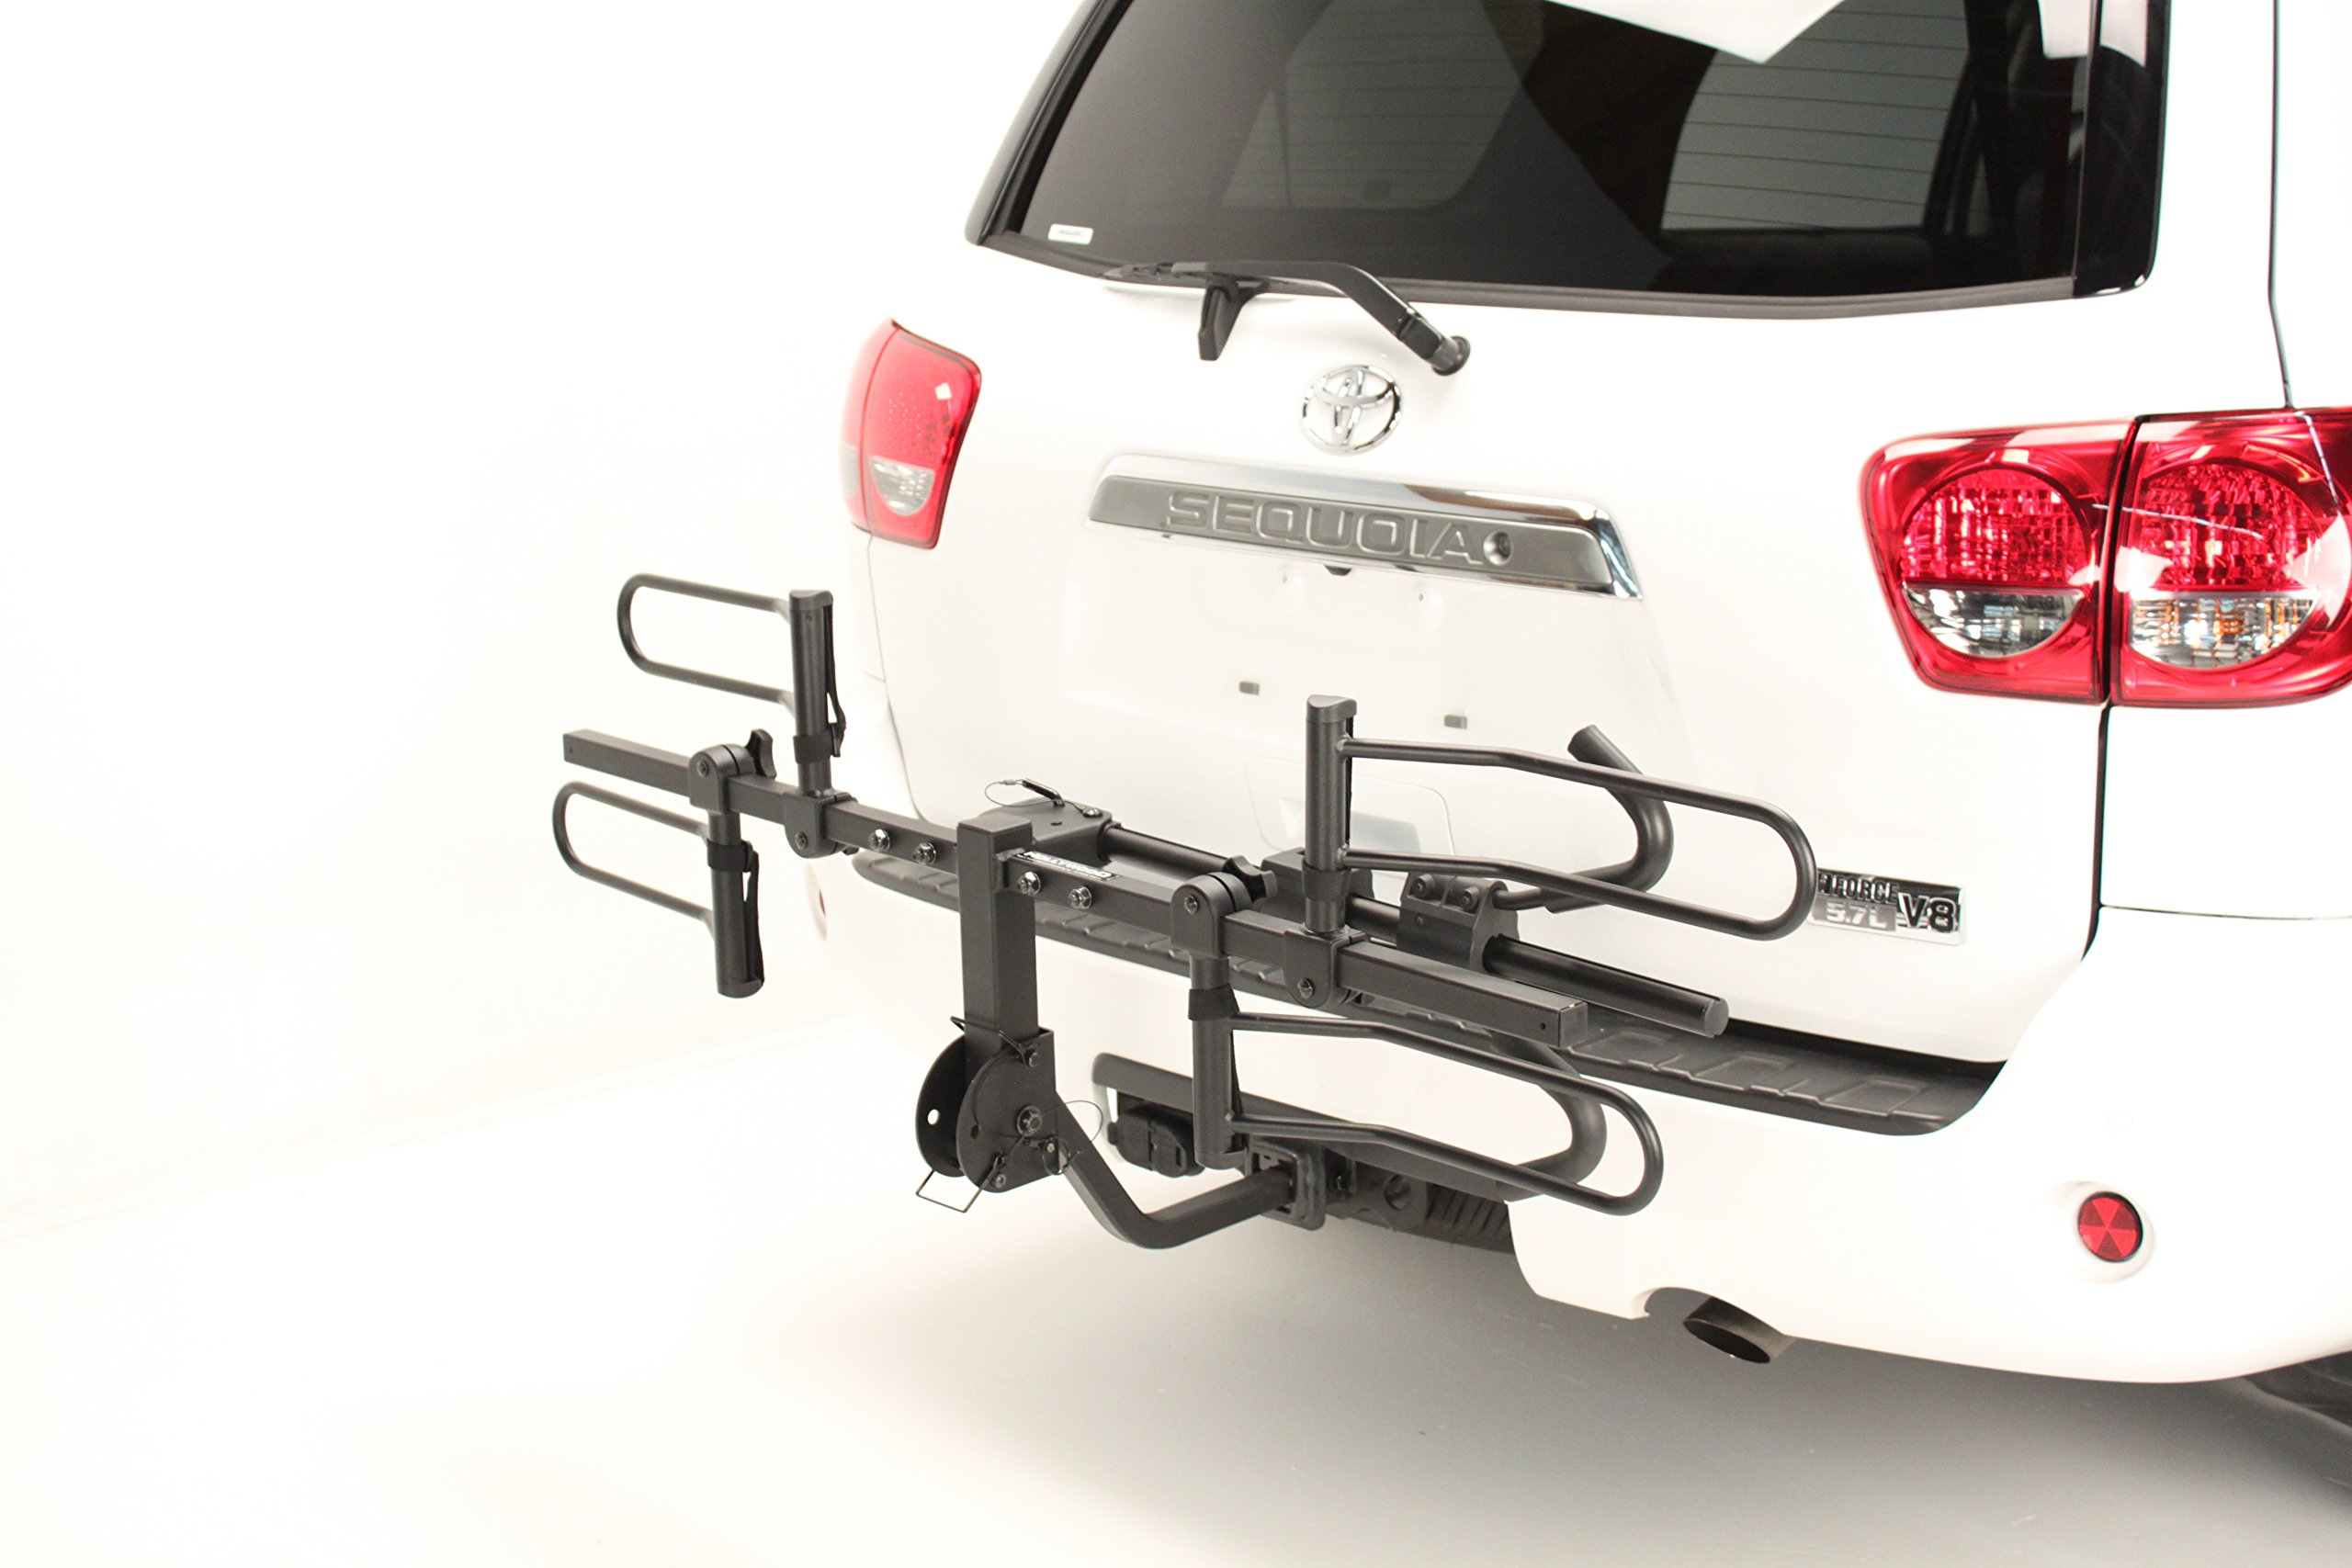 Hollywood Racks HR1000 Sport Rider 2-Bike Platform Style Hitch Mount Rack (1.25 and 2-Inch Receiver) by Hollywood Racks (Image #2)